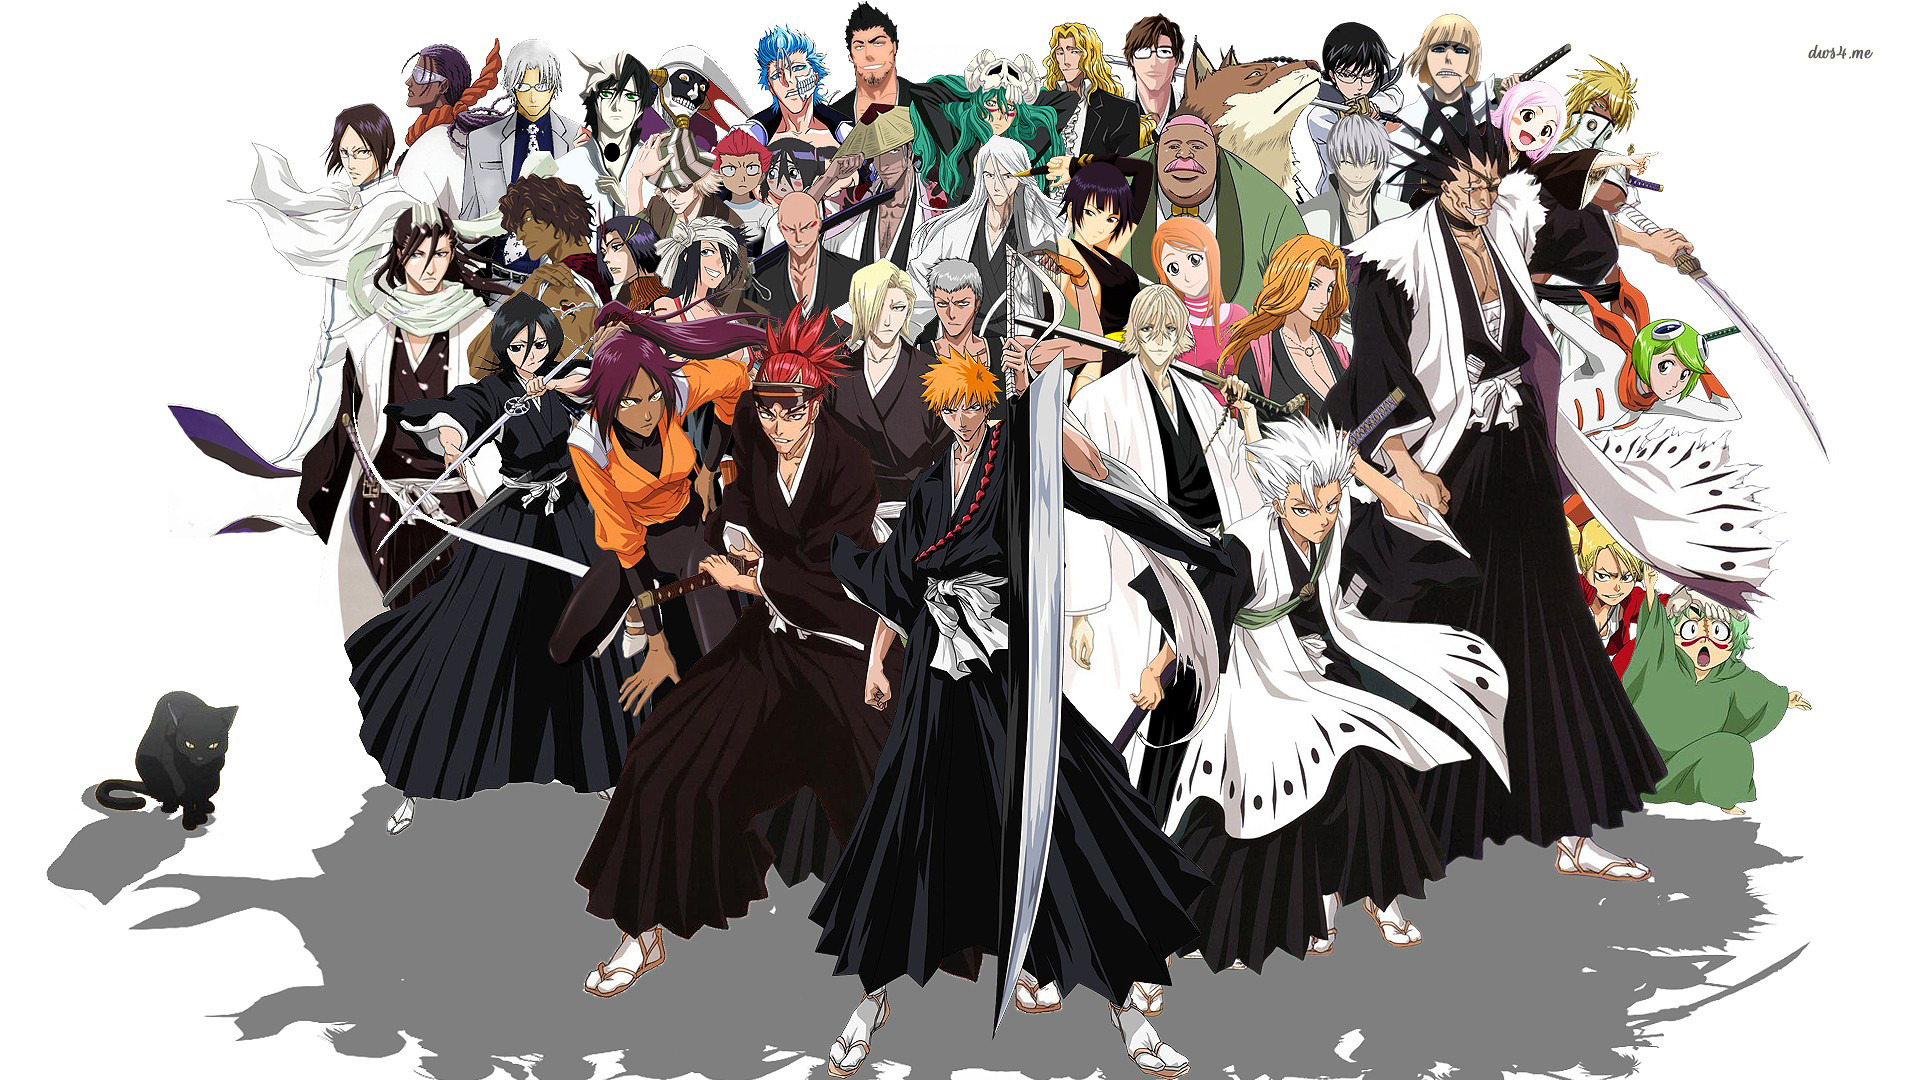 image - bleach-hero-anime-wallpaper-hd | vs battles wiki